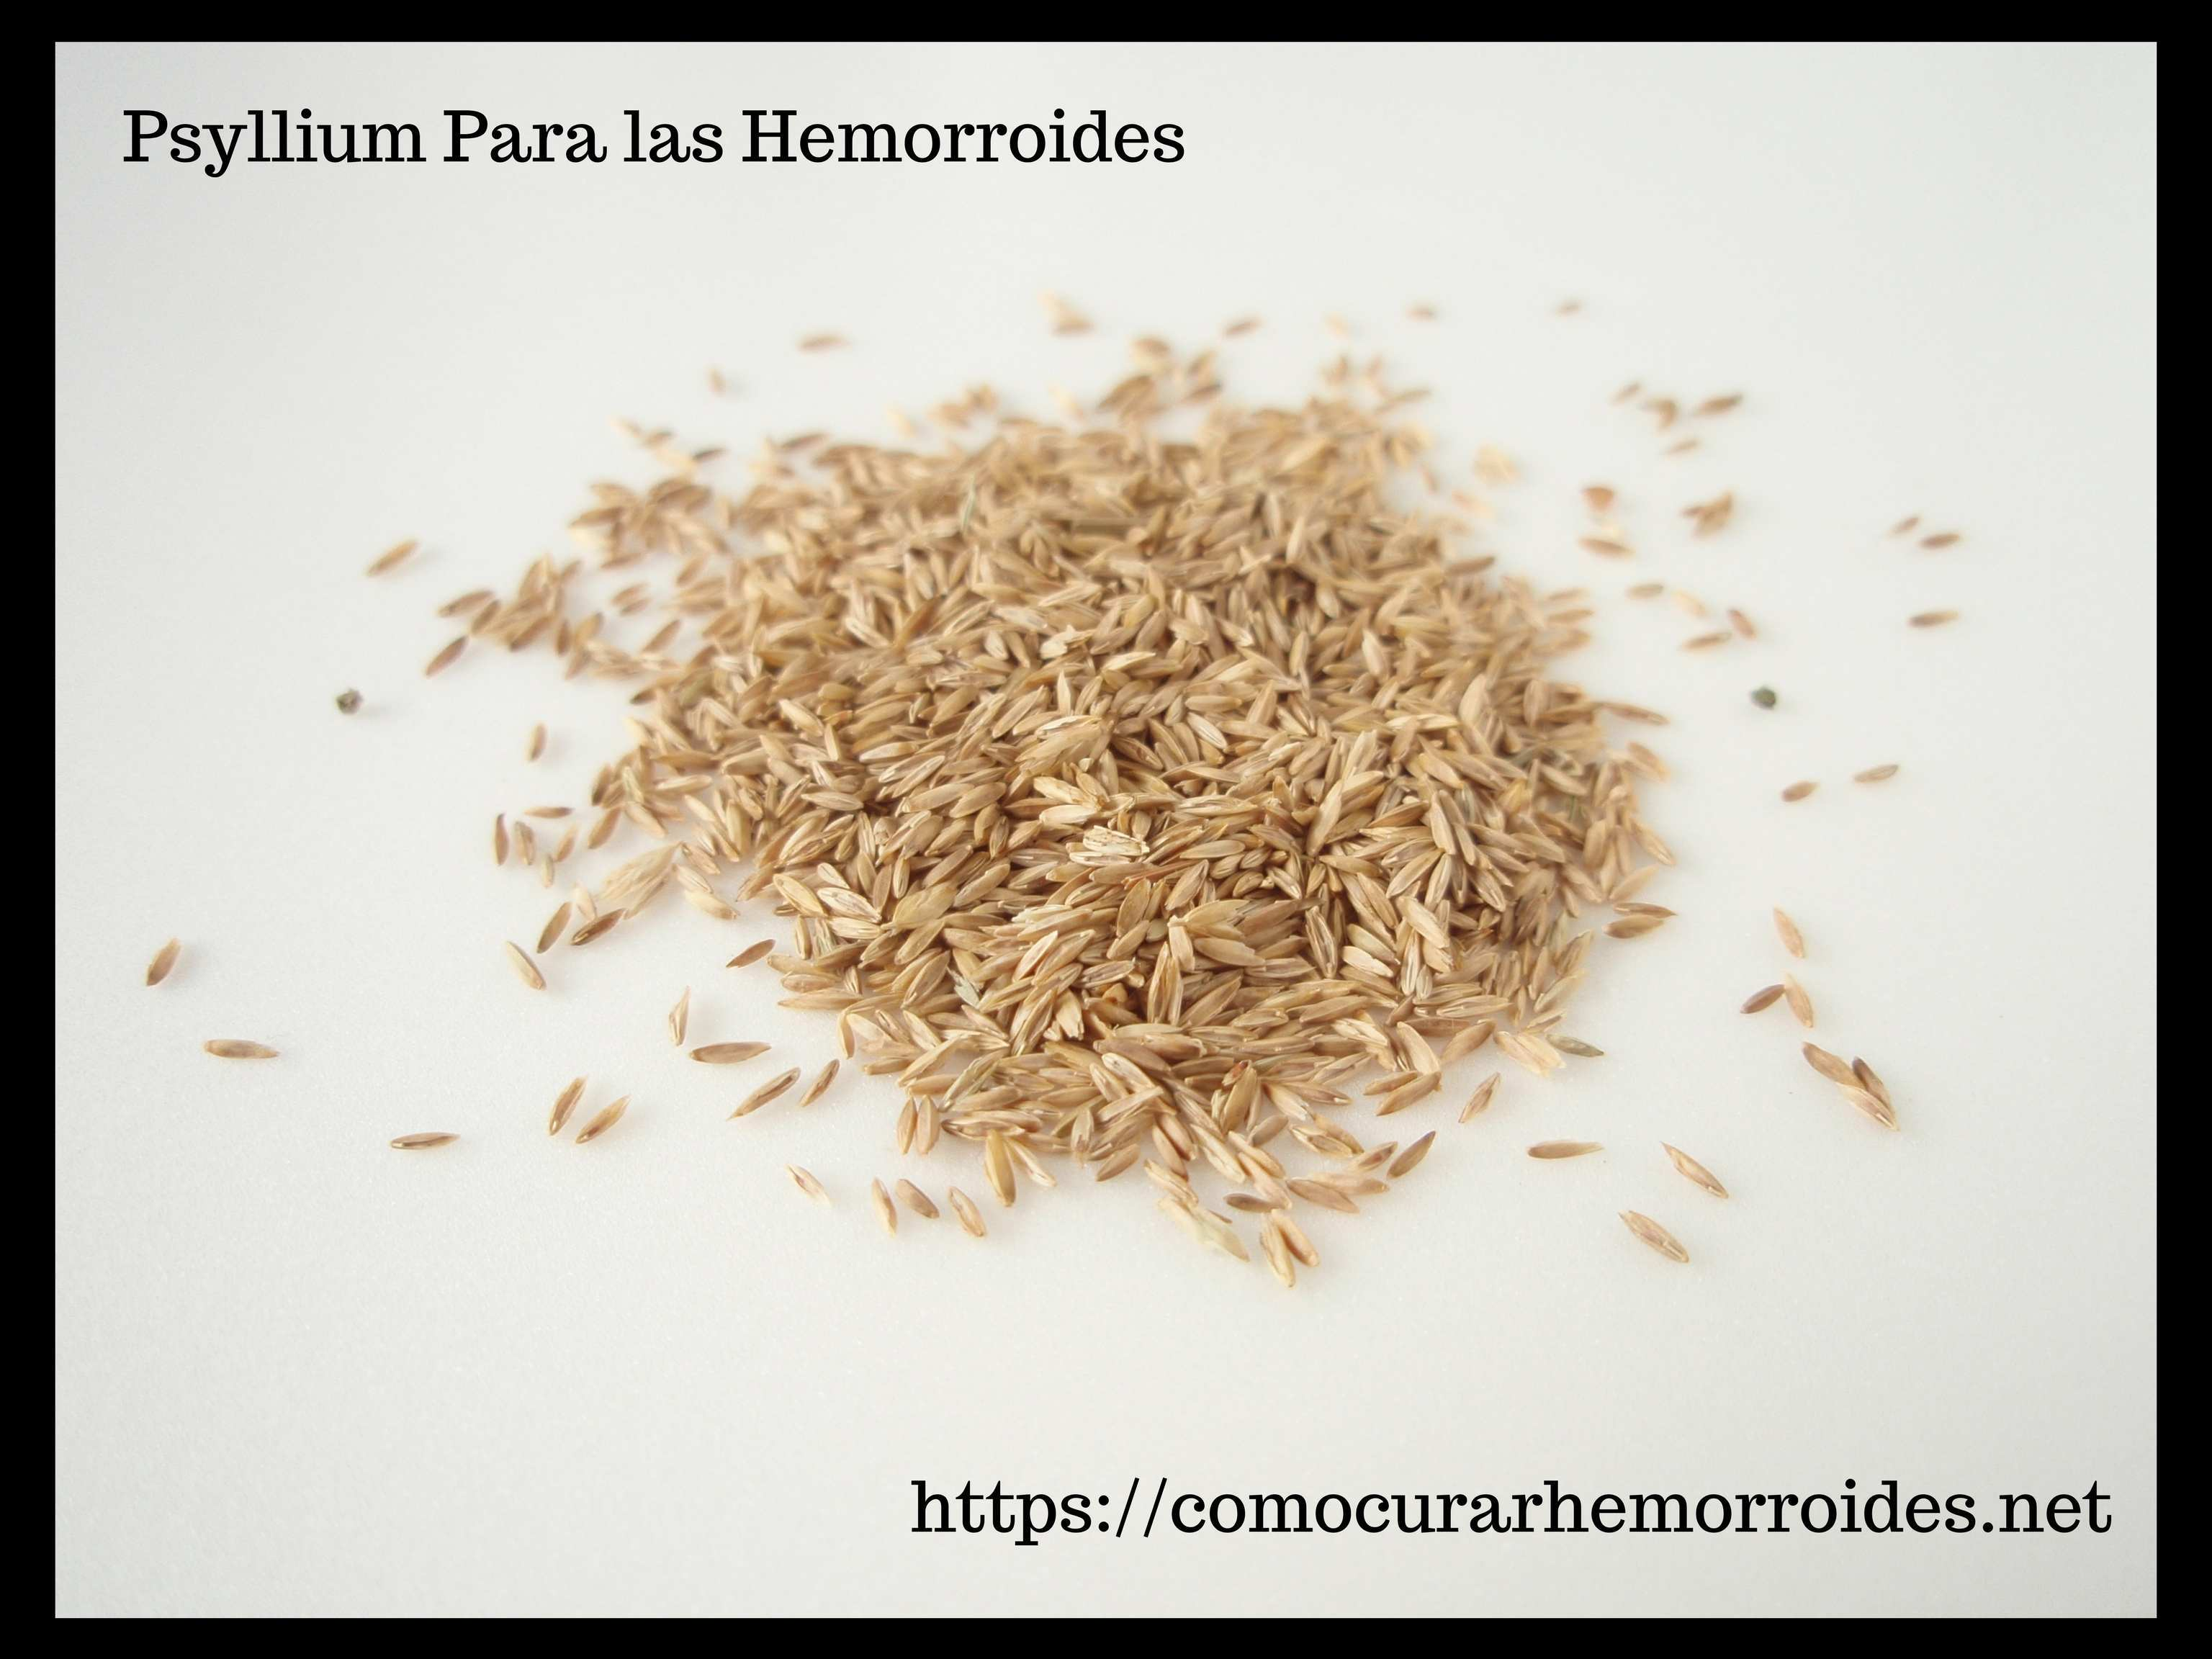 El Psyllium es un remedio natural para las almorranas